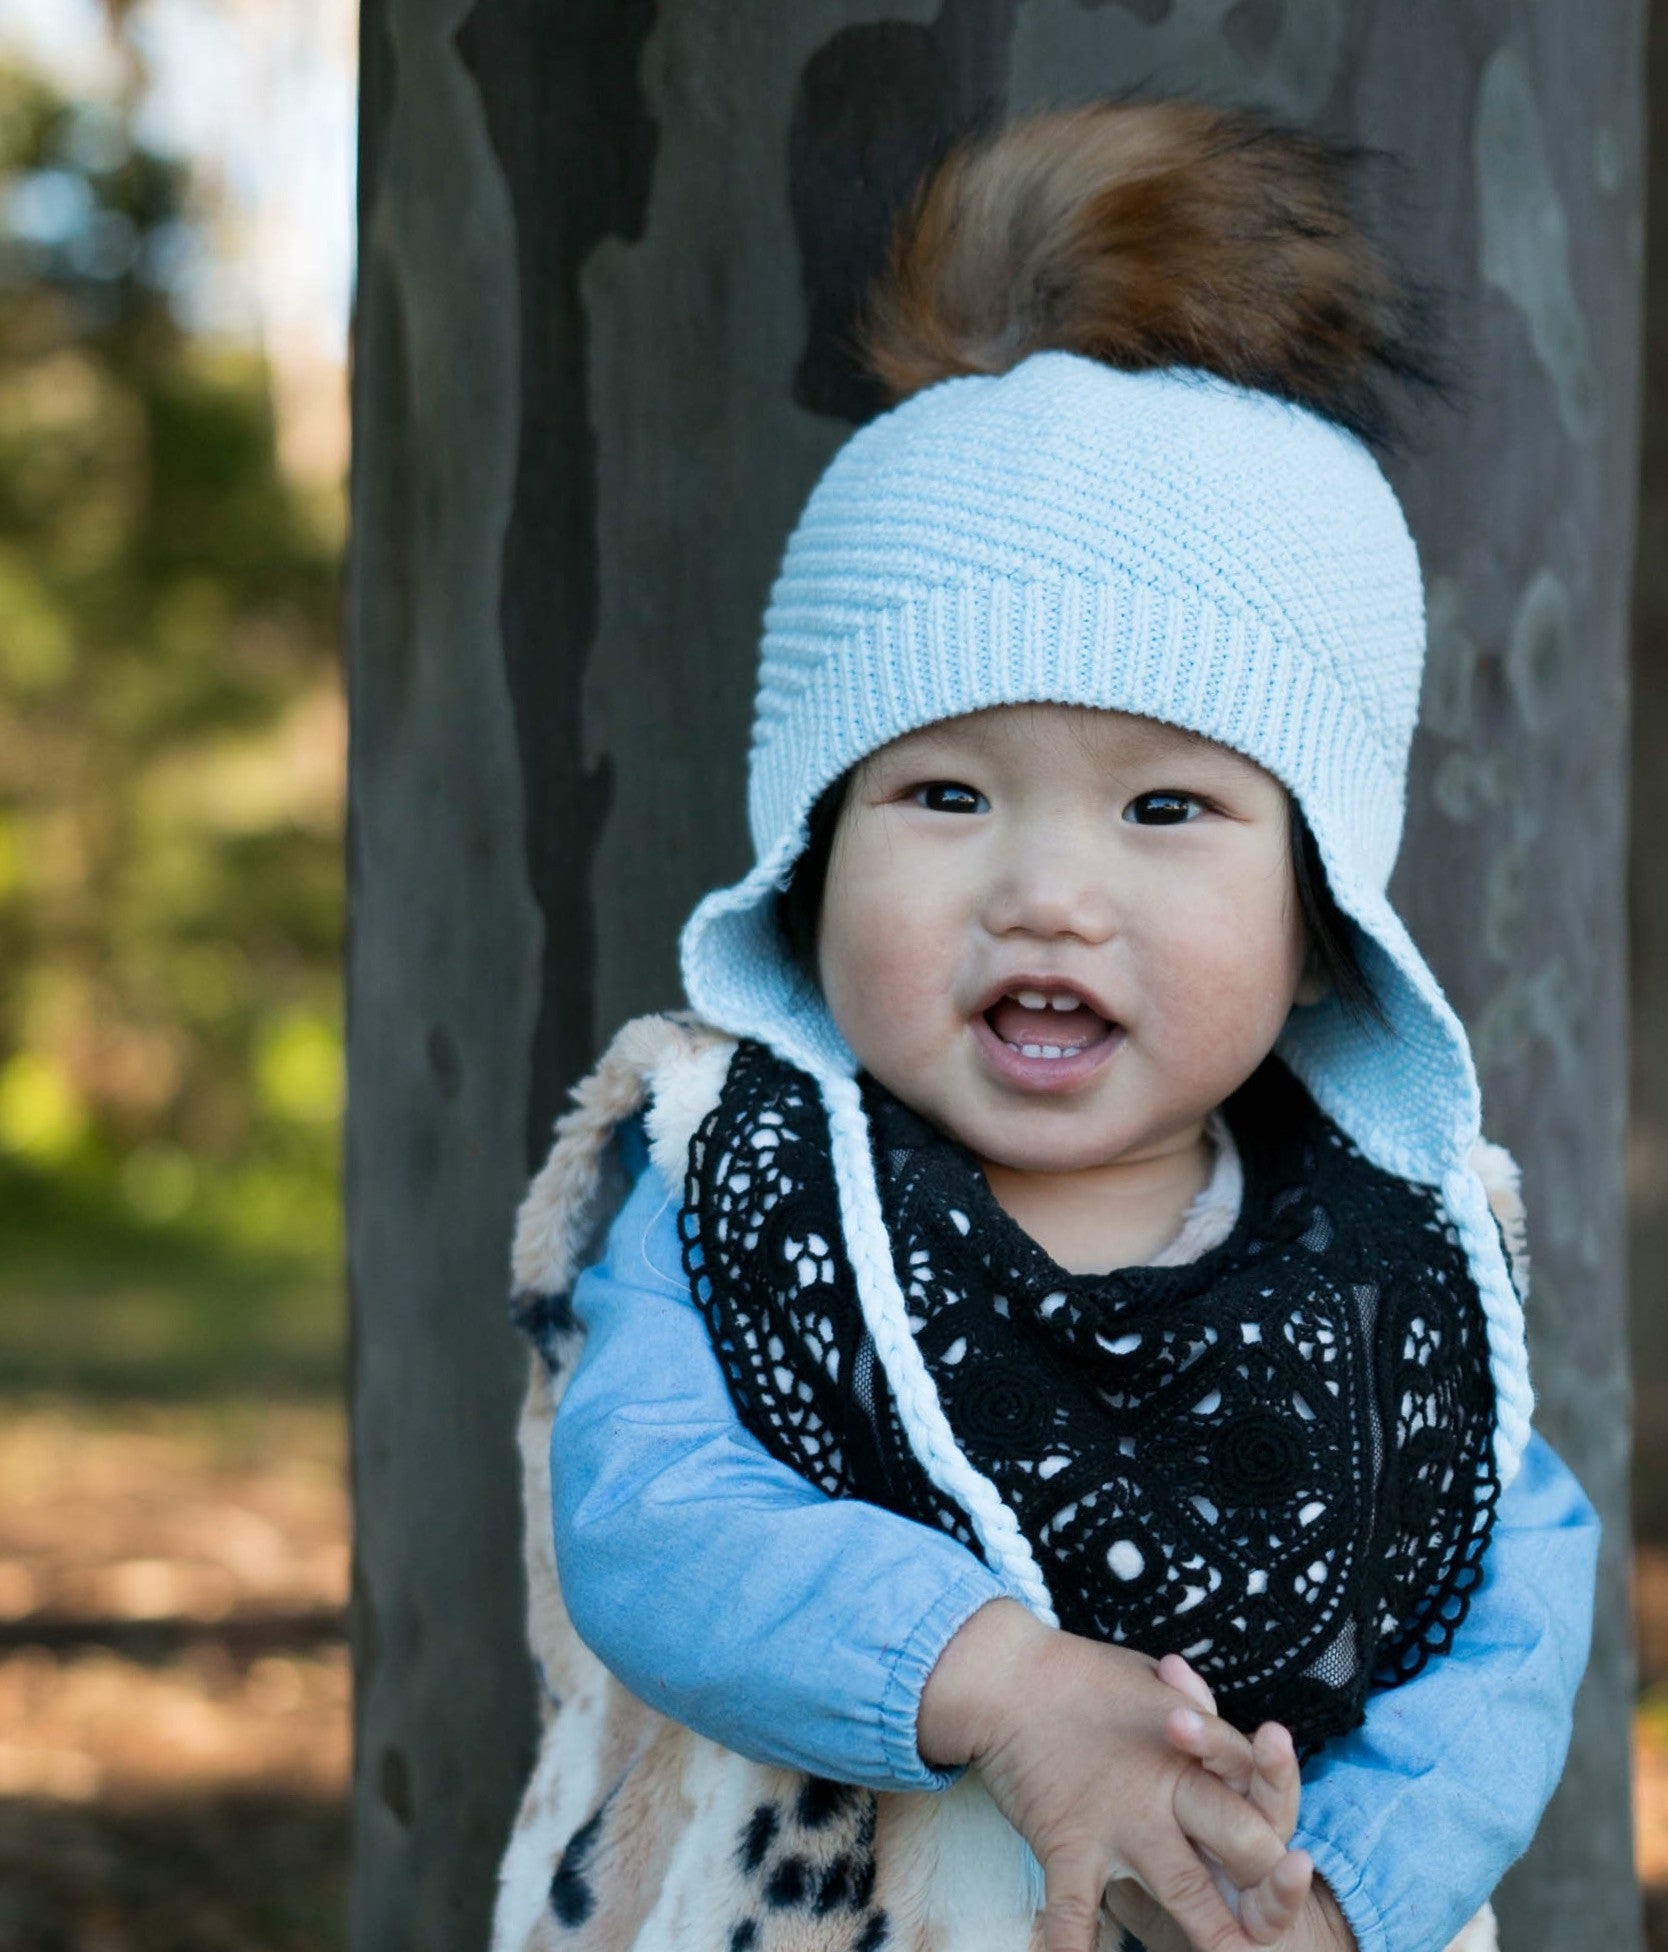 Baby Blue Beanie, 100% Cotton, Made In Australia, Limited Edition